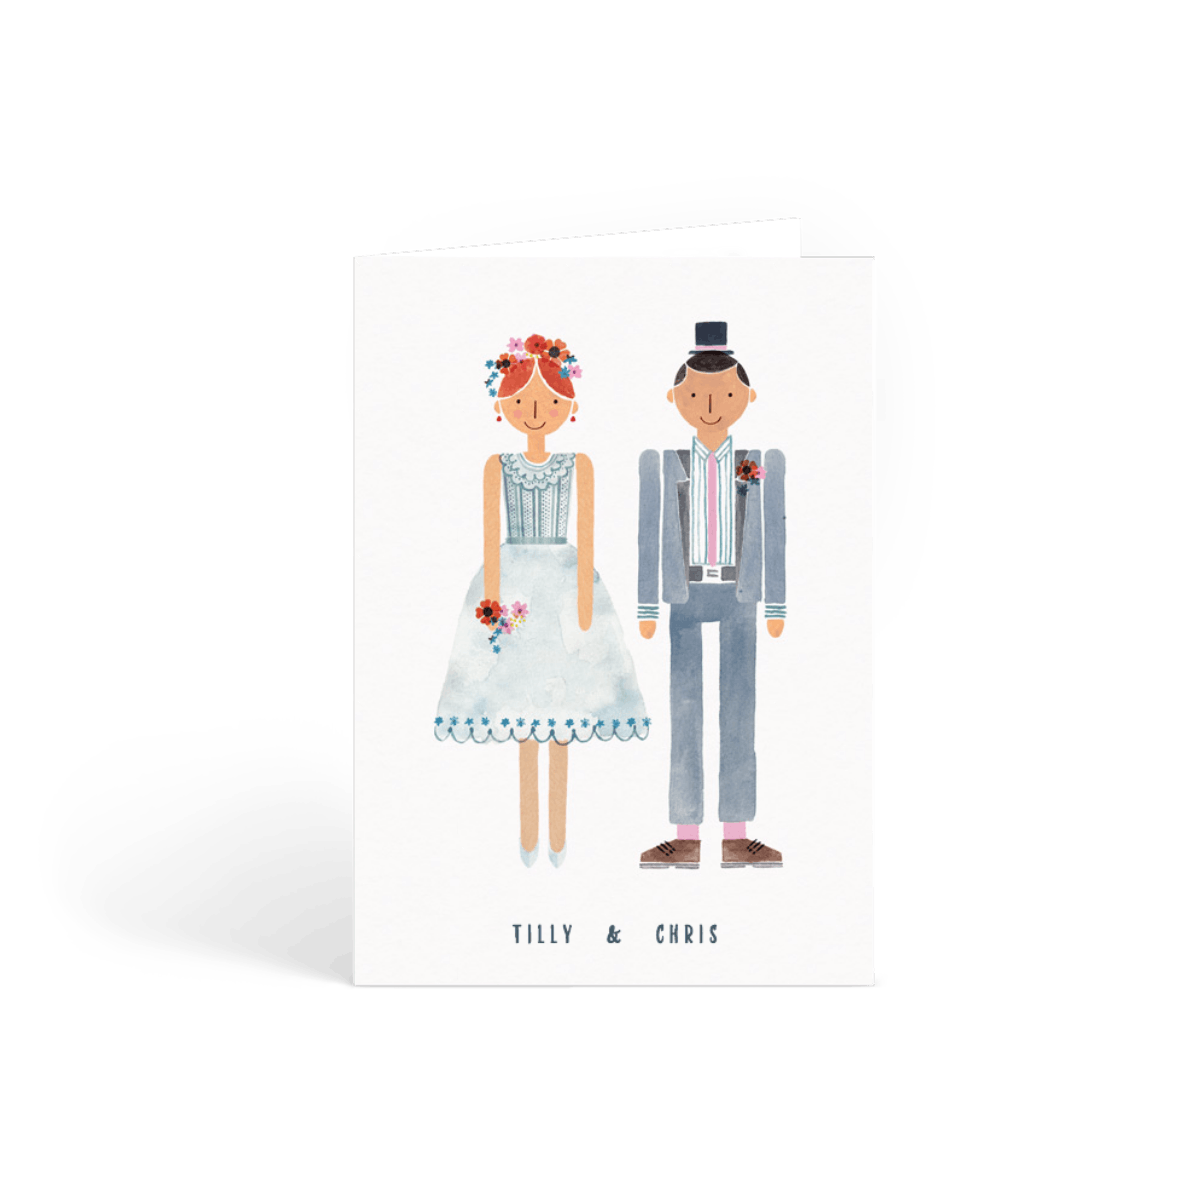 Https%3a%2f%2fwww.papier.com%2fproduct image%2f3644%2f2%2fwedding couple mrs mr 979 front 1453910933.png?ixlib=rb 1.1